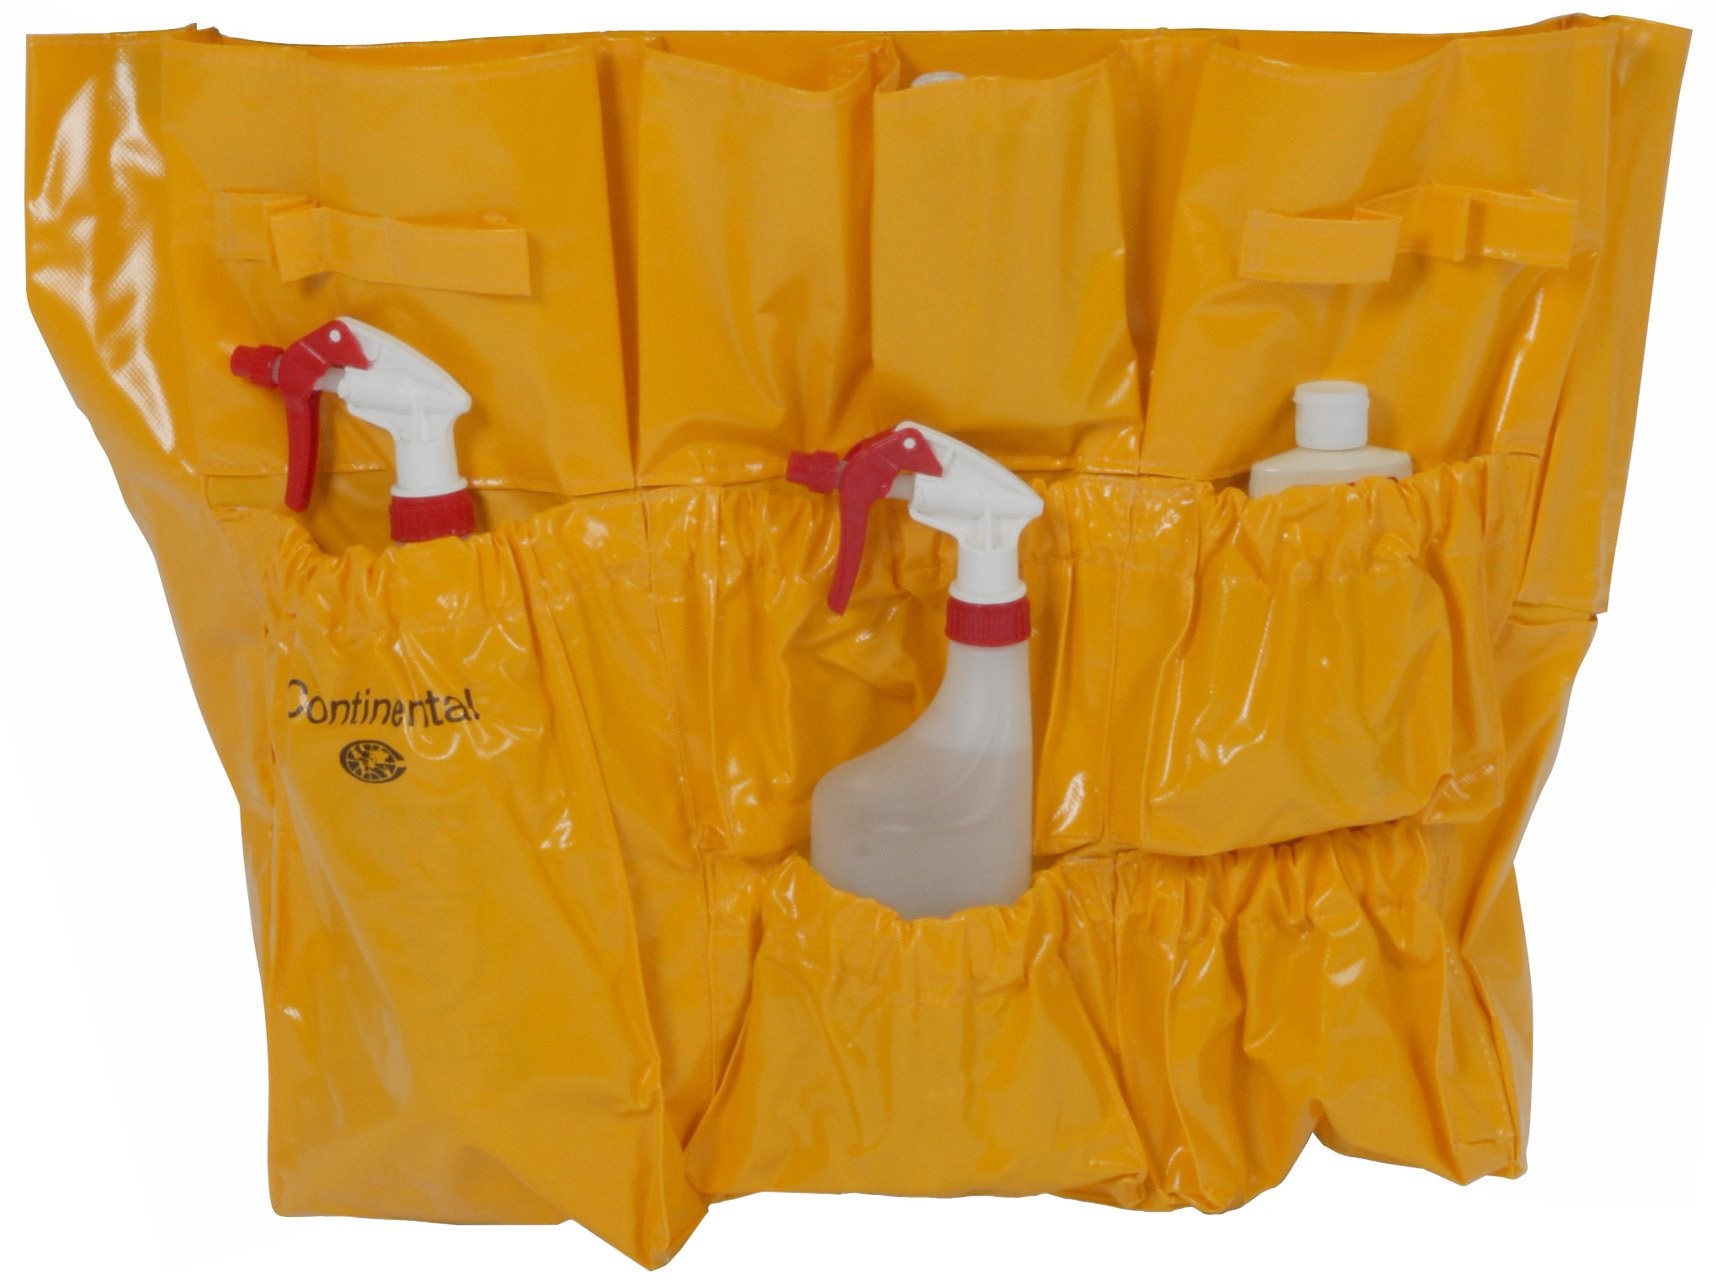 Continental 3175, Vinyl Yellow Caddy Bag, 22'' Width x 19-1/2'' Height, for Huskee Round and Square Containers (Case of 6)